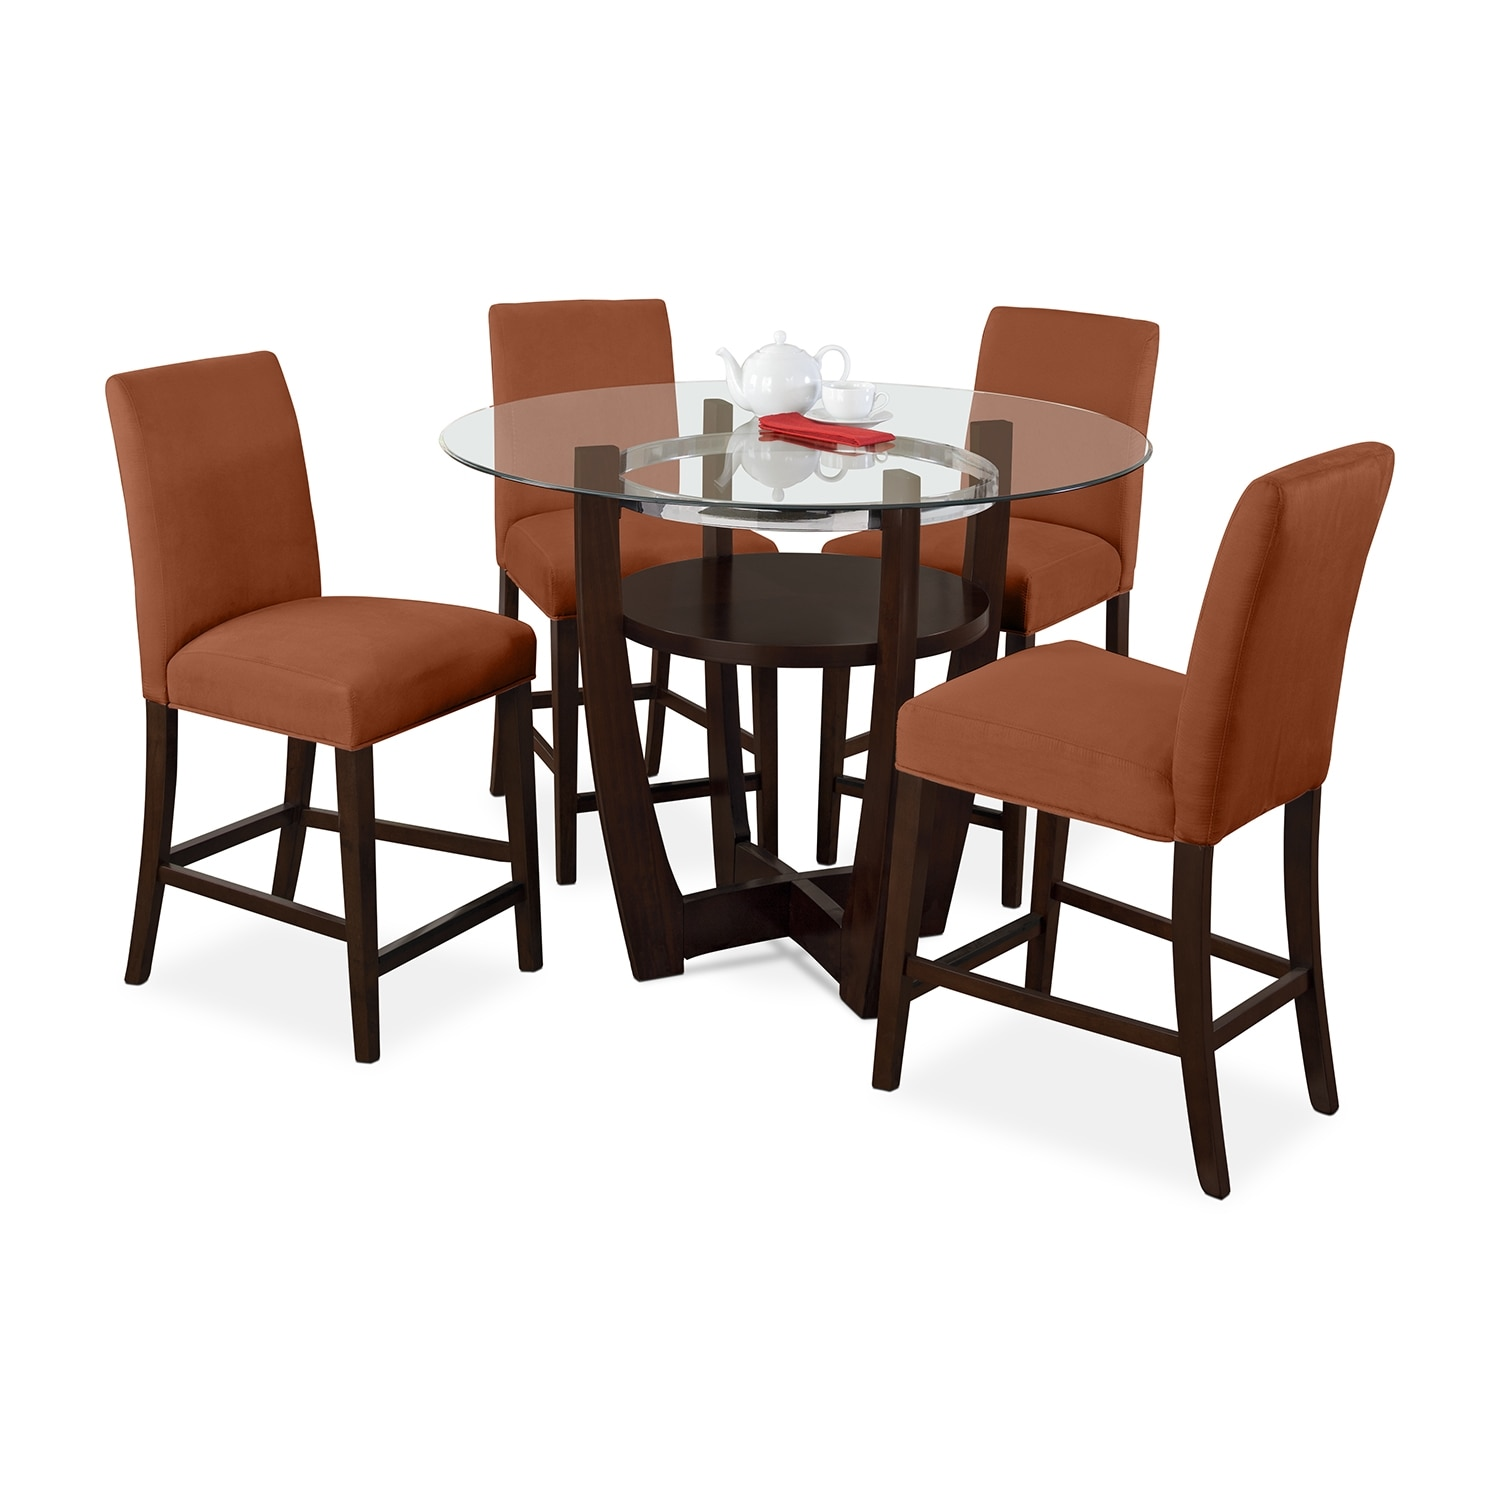 Dining Room Furniture - Alcove Counter-Height Dinette with 4 Side Chairs - Orange